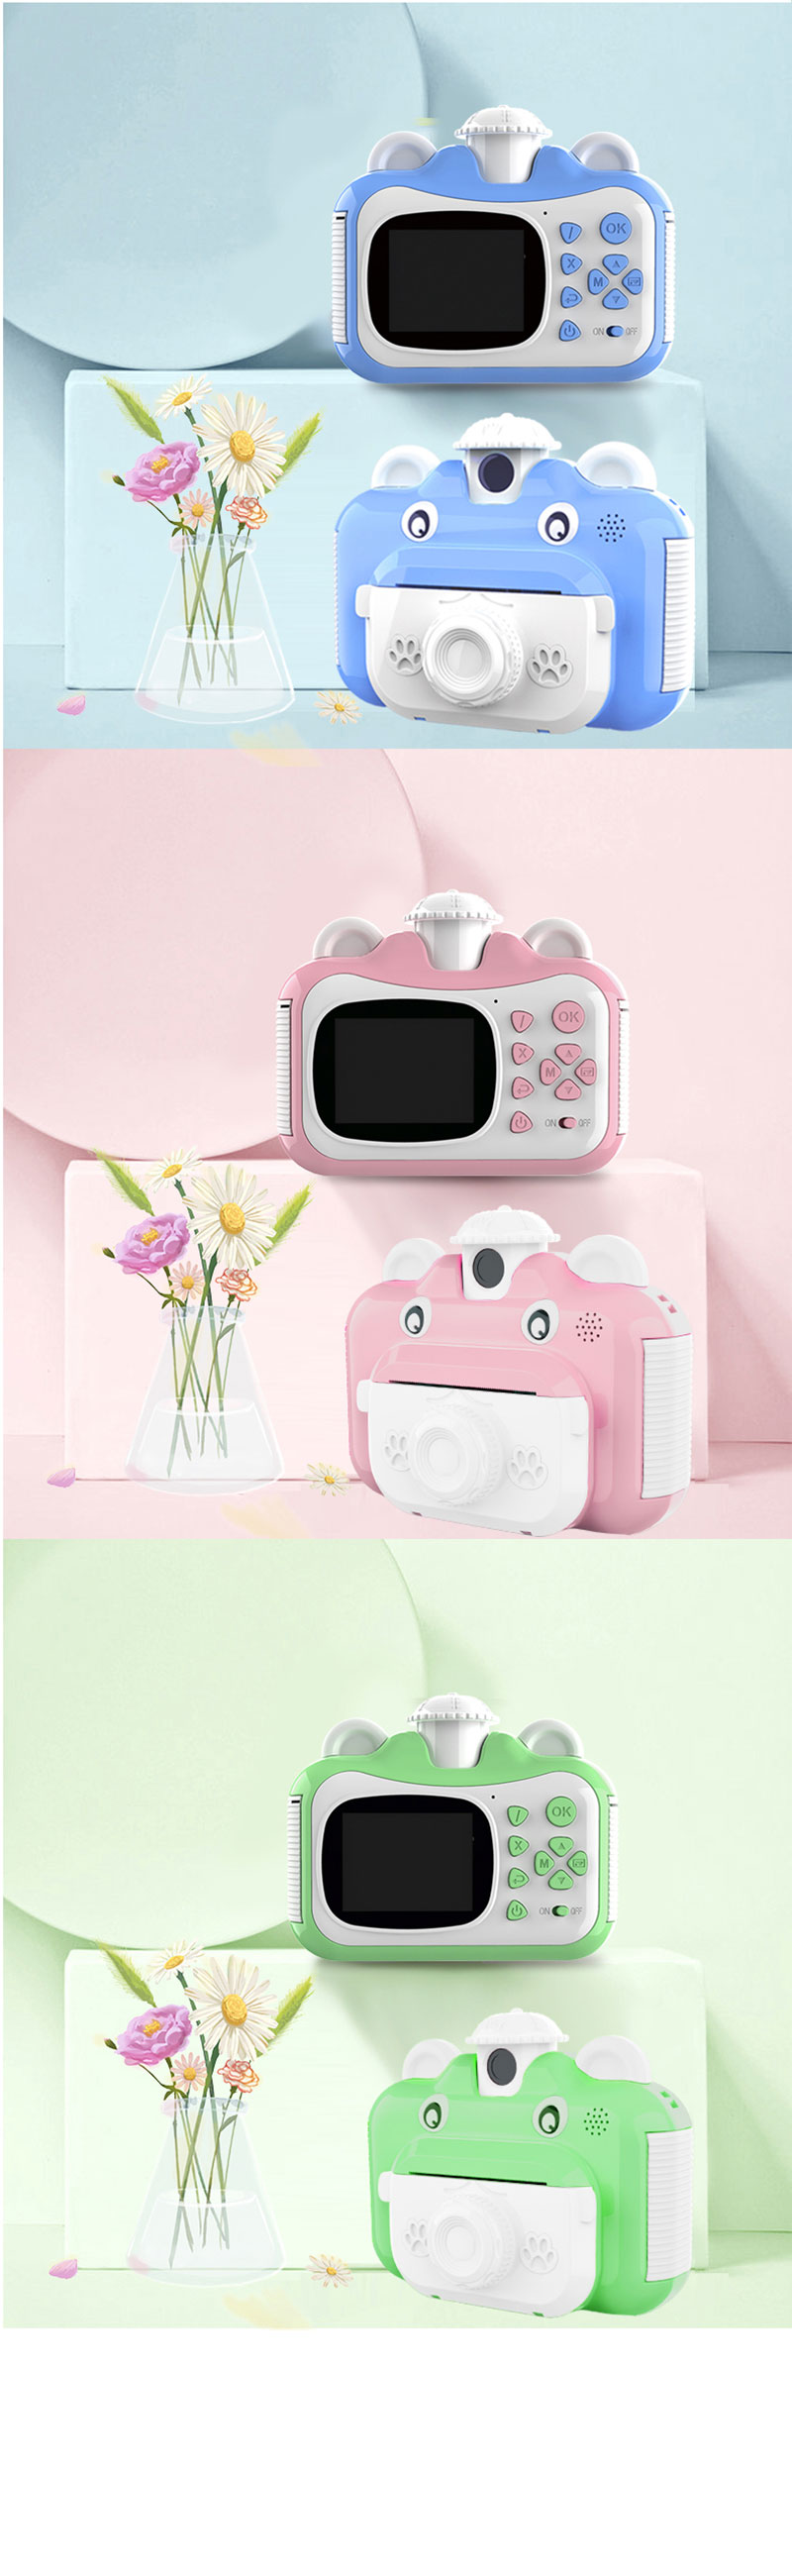 Minibear Children Camera Instant Print Camera For Kids 1080P HD Camera With Thermal Photo Paper Toys Camera For Birthday Gifts 5